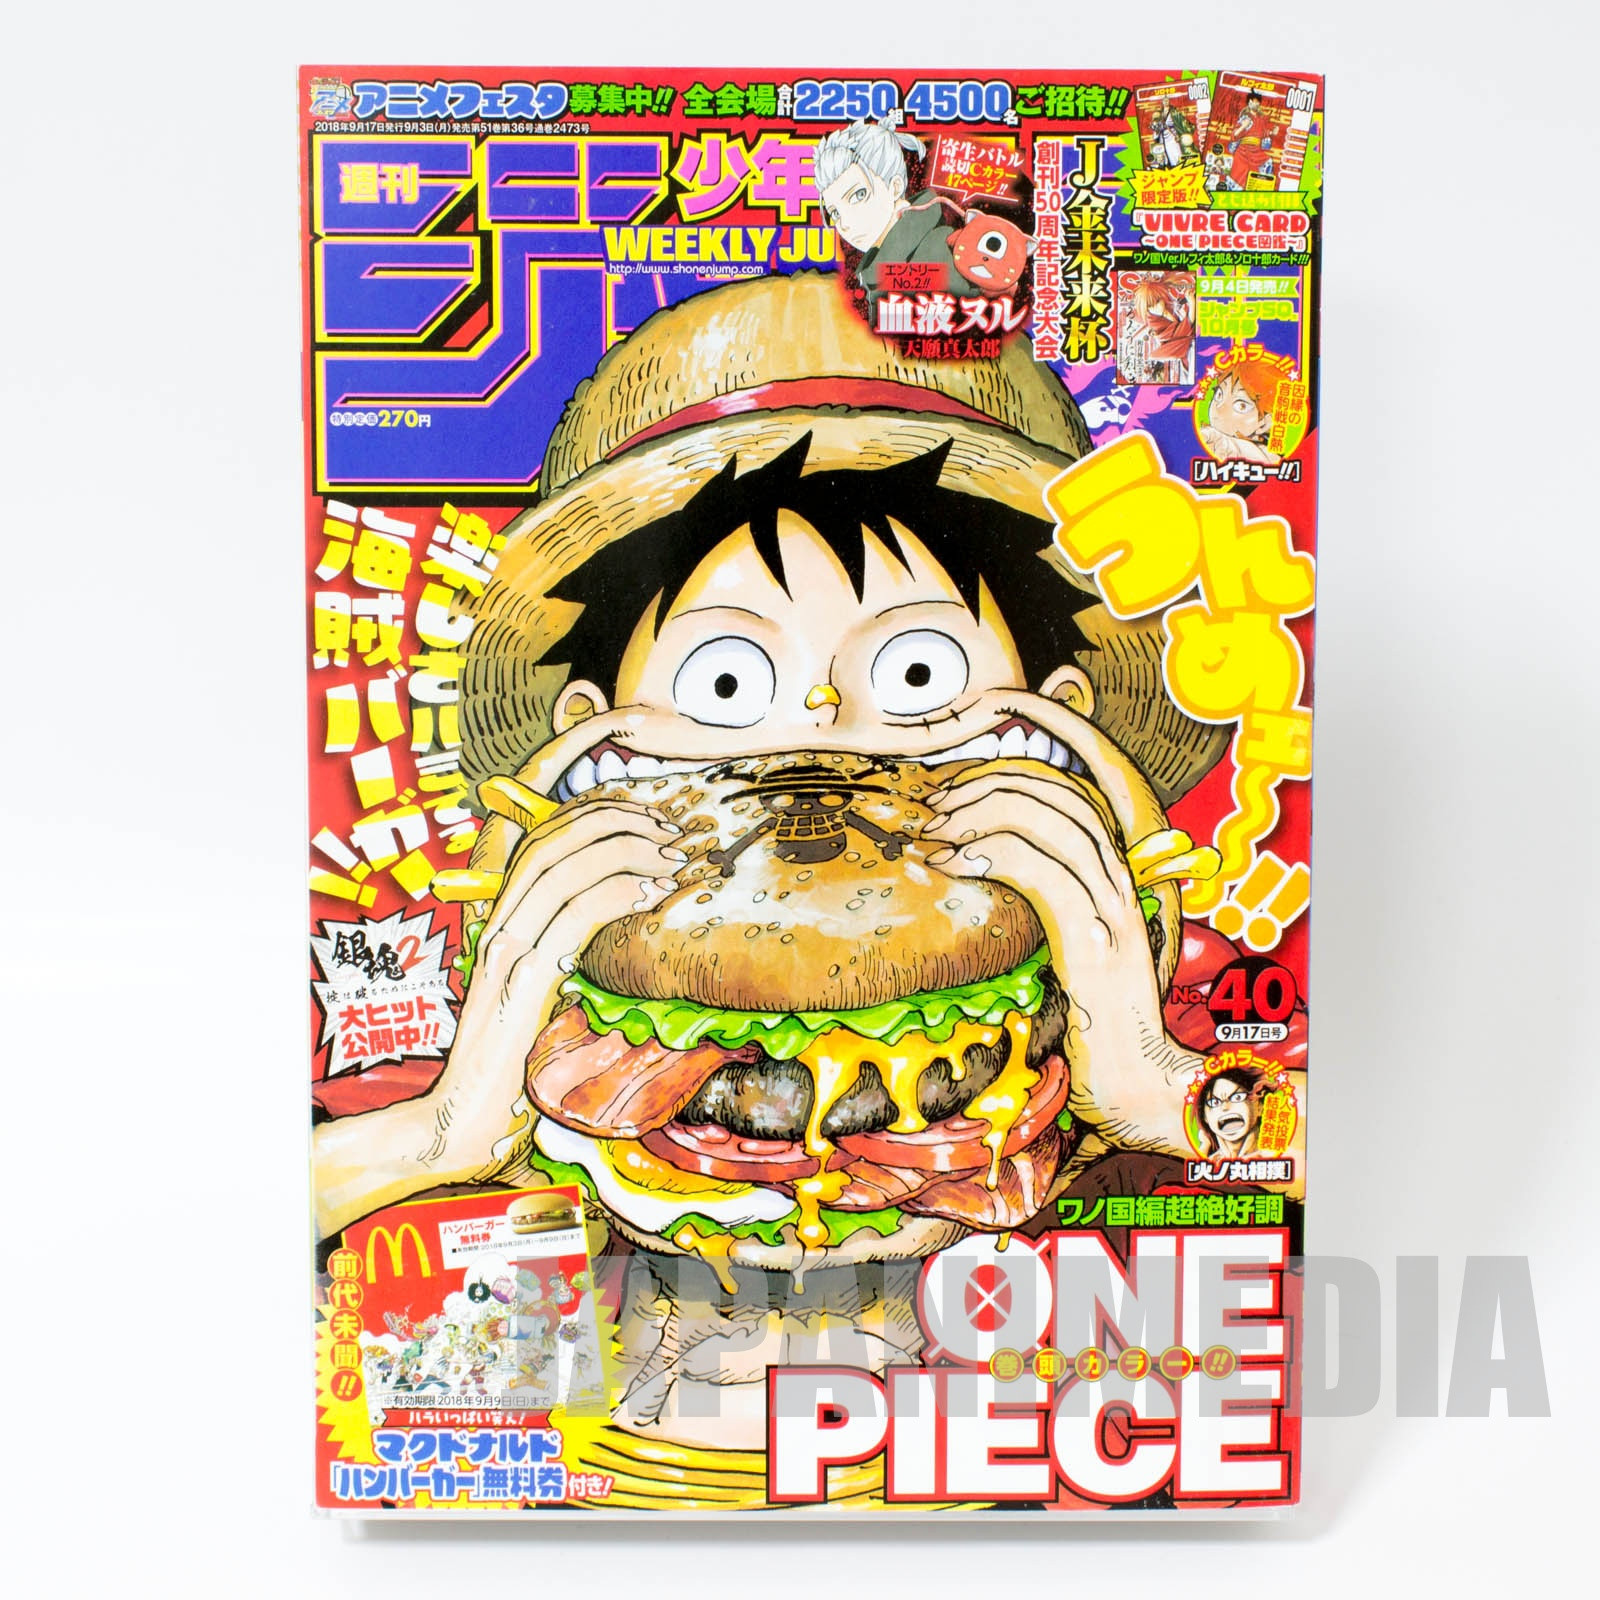 Weekly Shonen JUMP Vol.40 2018 One Piece / Japanese Magazine JAPAN MANGA